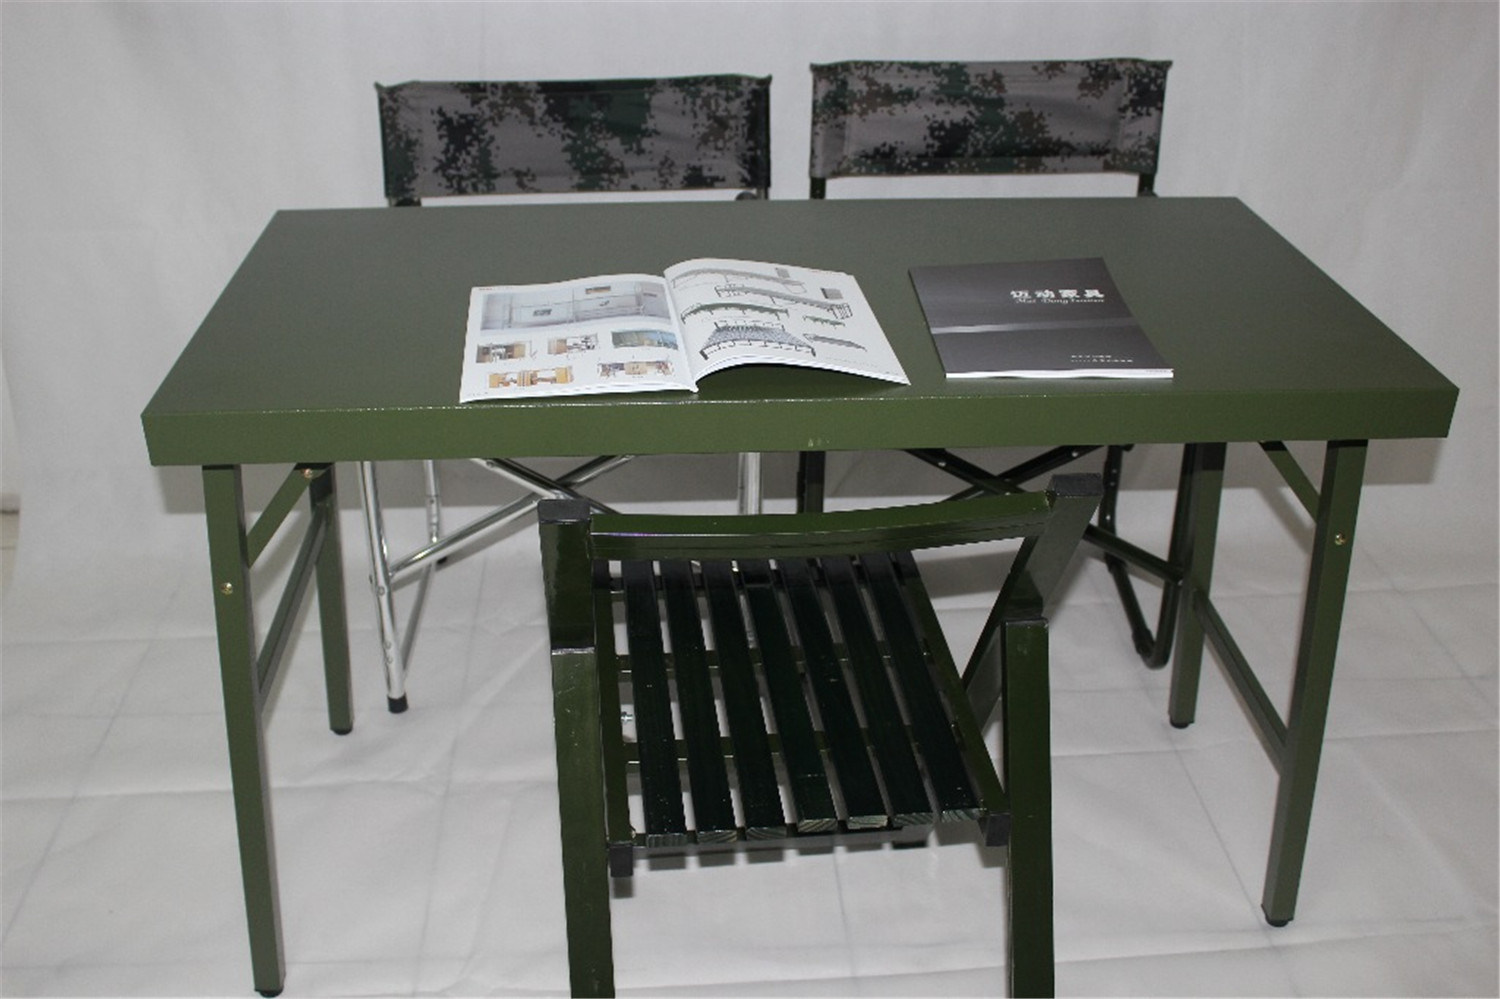 2016 Traditional Design Patent Tactical Multifunctional Militarty Use Outdoor Training Chair or Desk